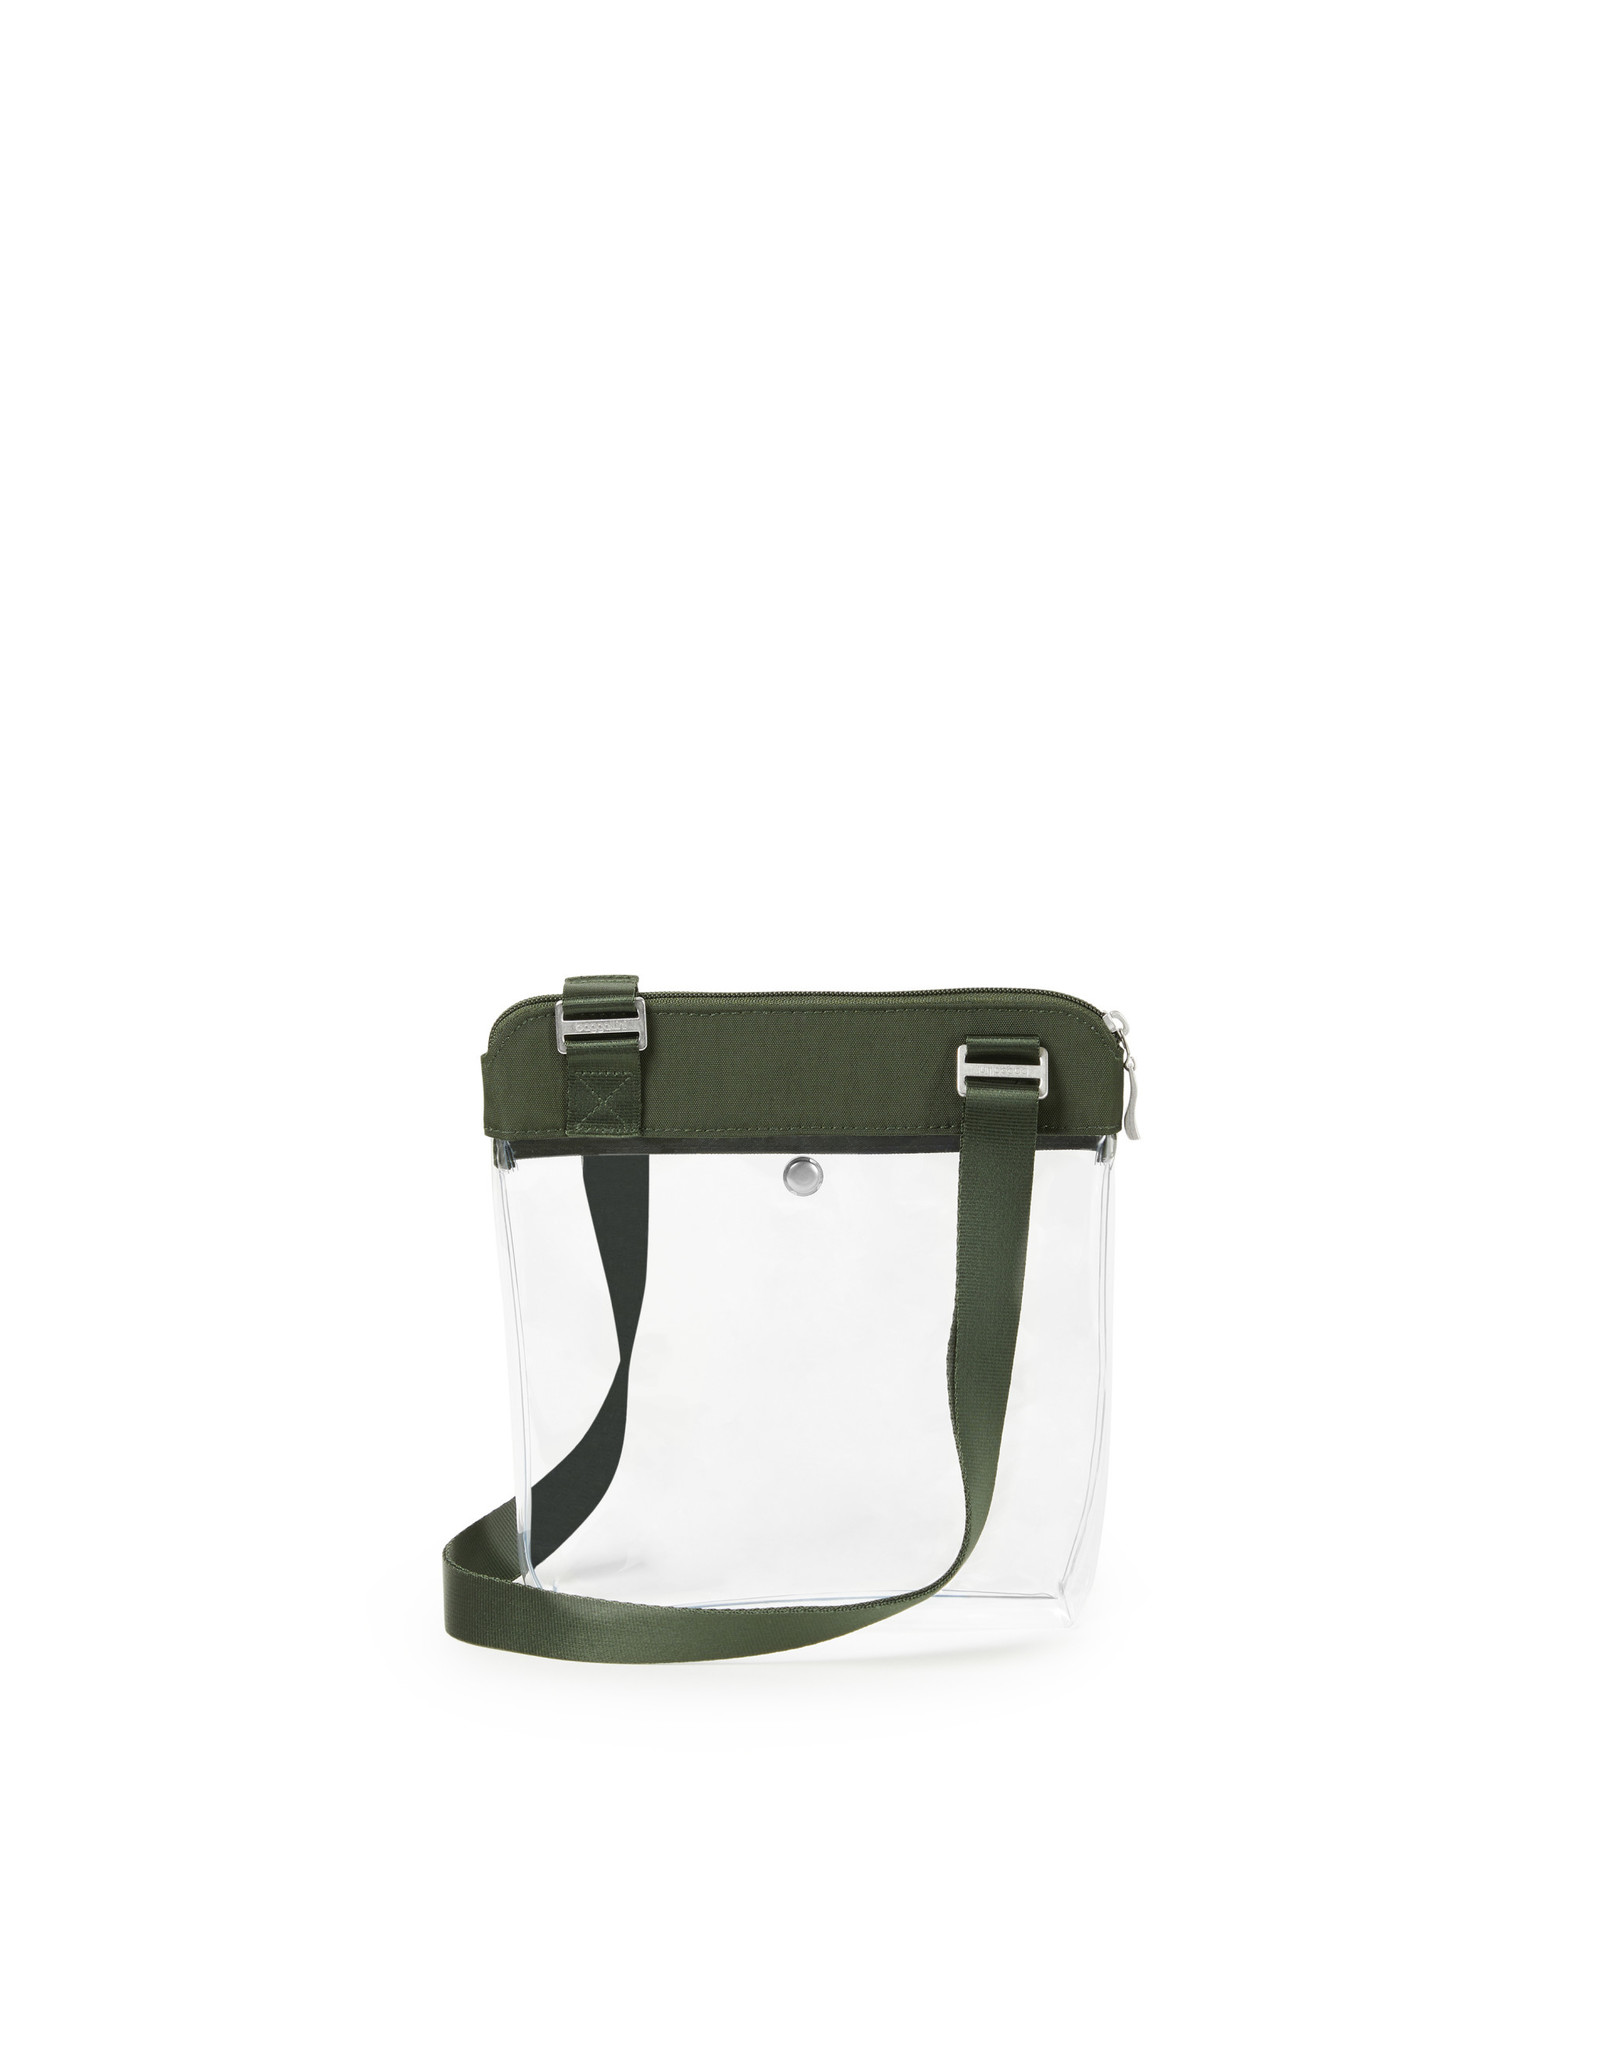 Baggallini Clear Event Compliant Pocket Crossbody - Deep Green